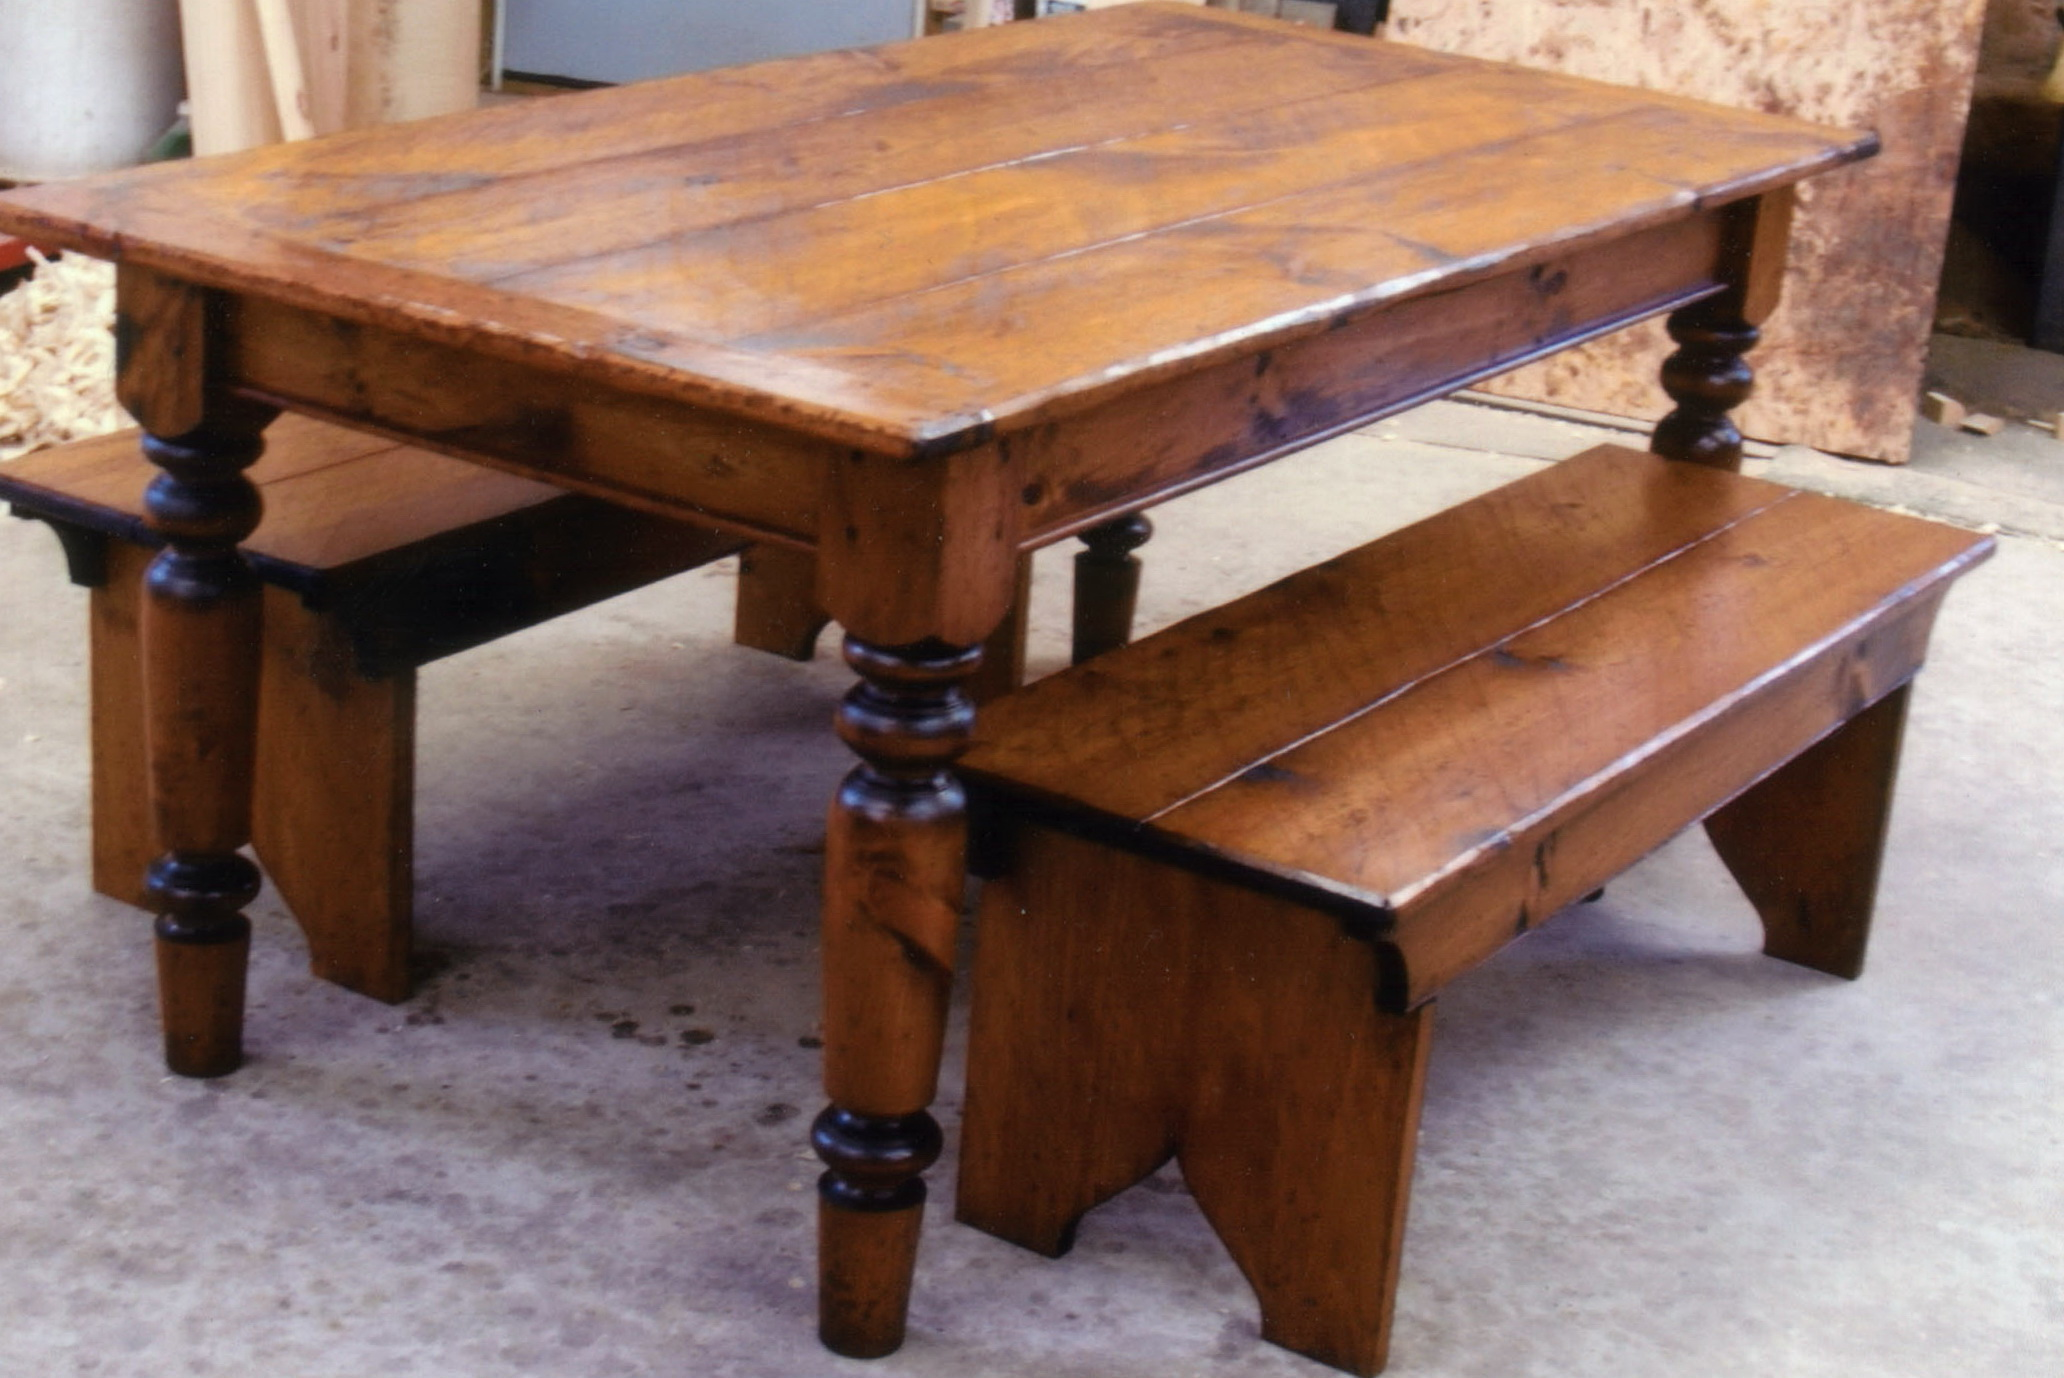 Wooden Kitchen Tables With Benches